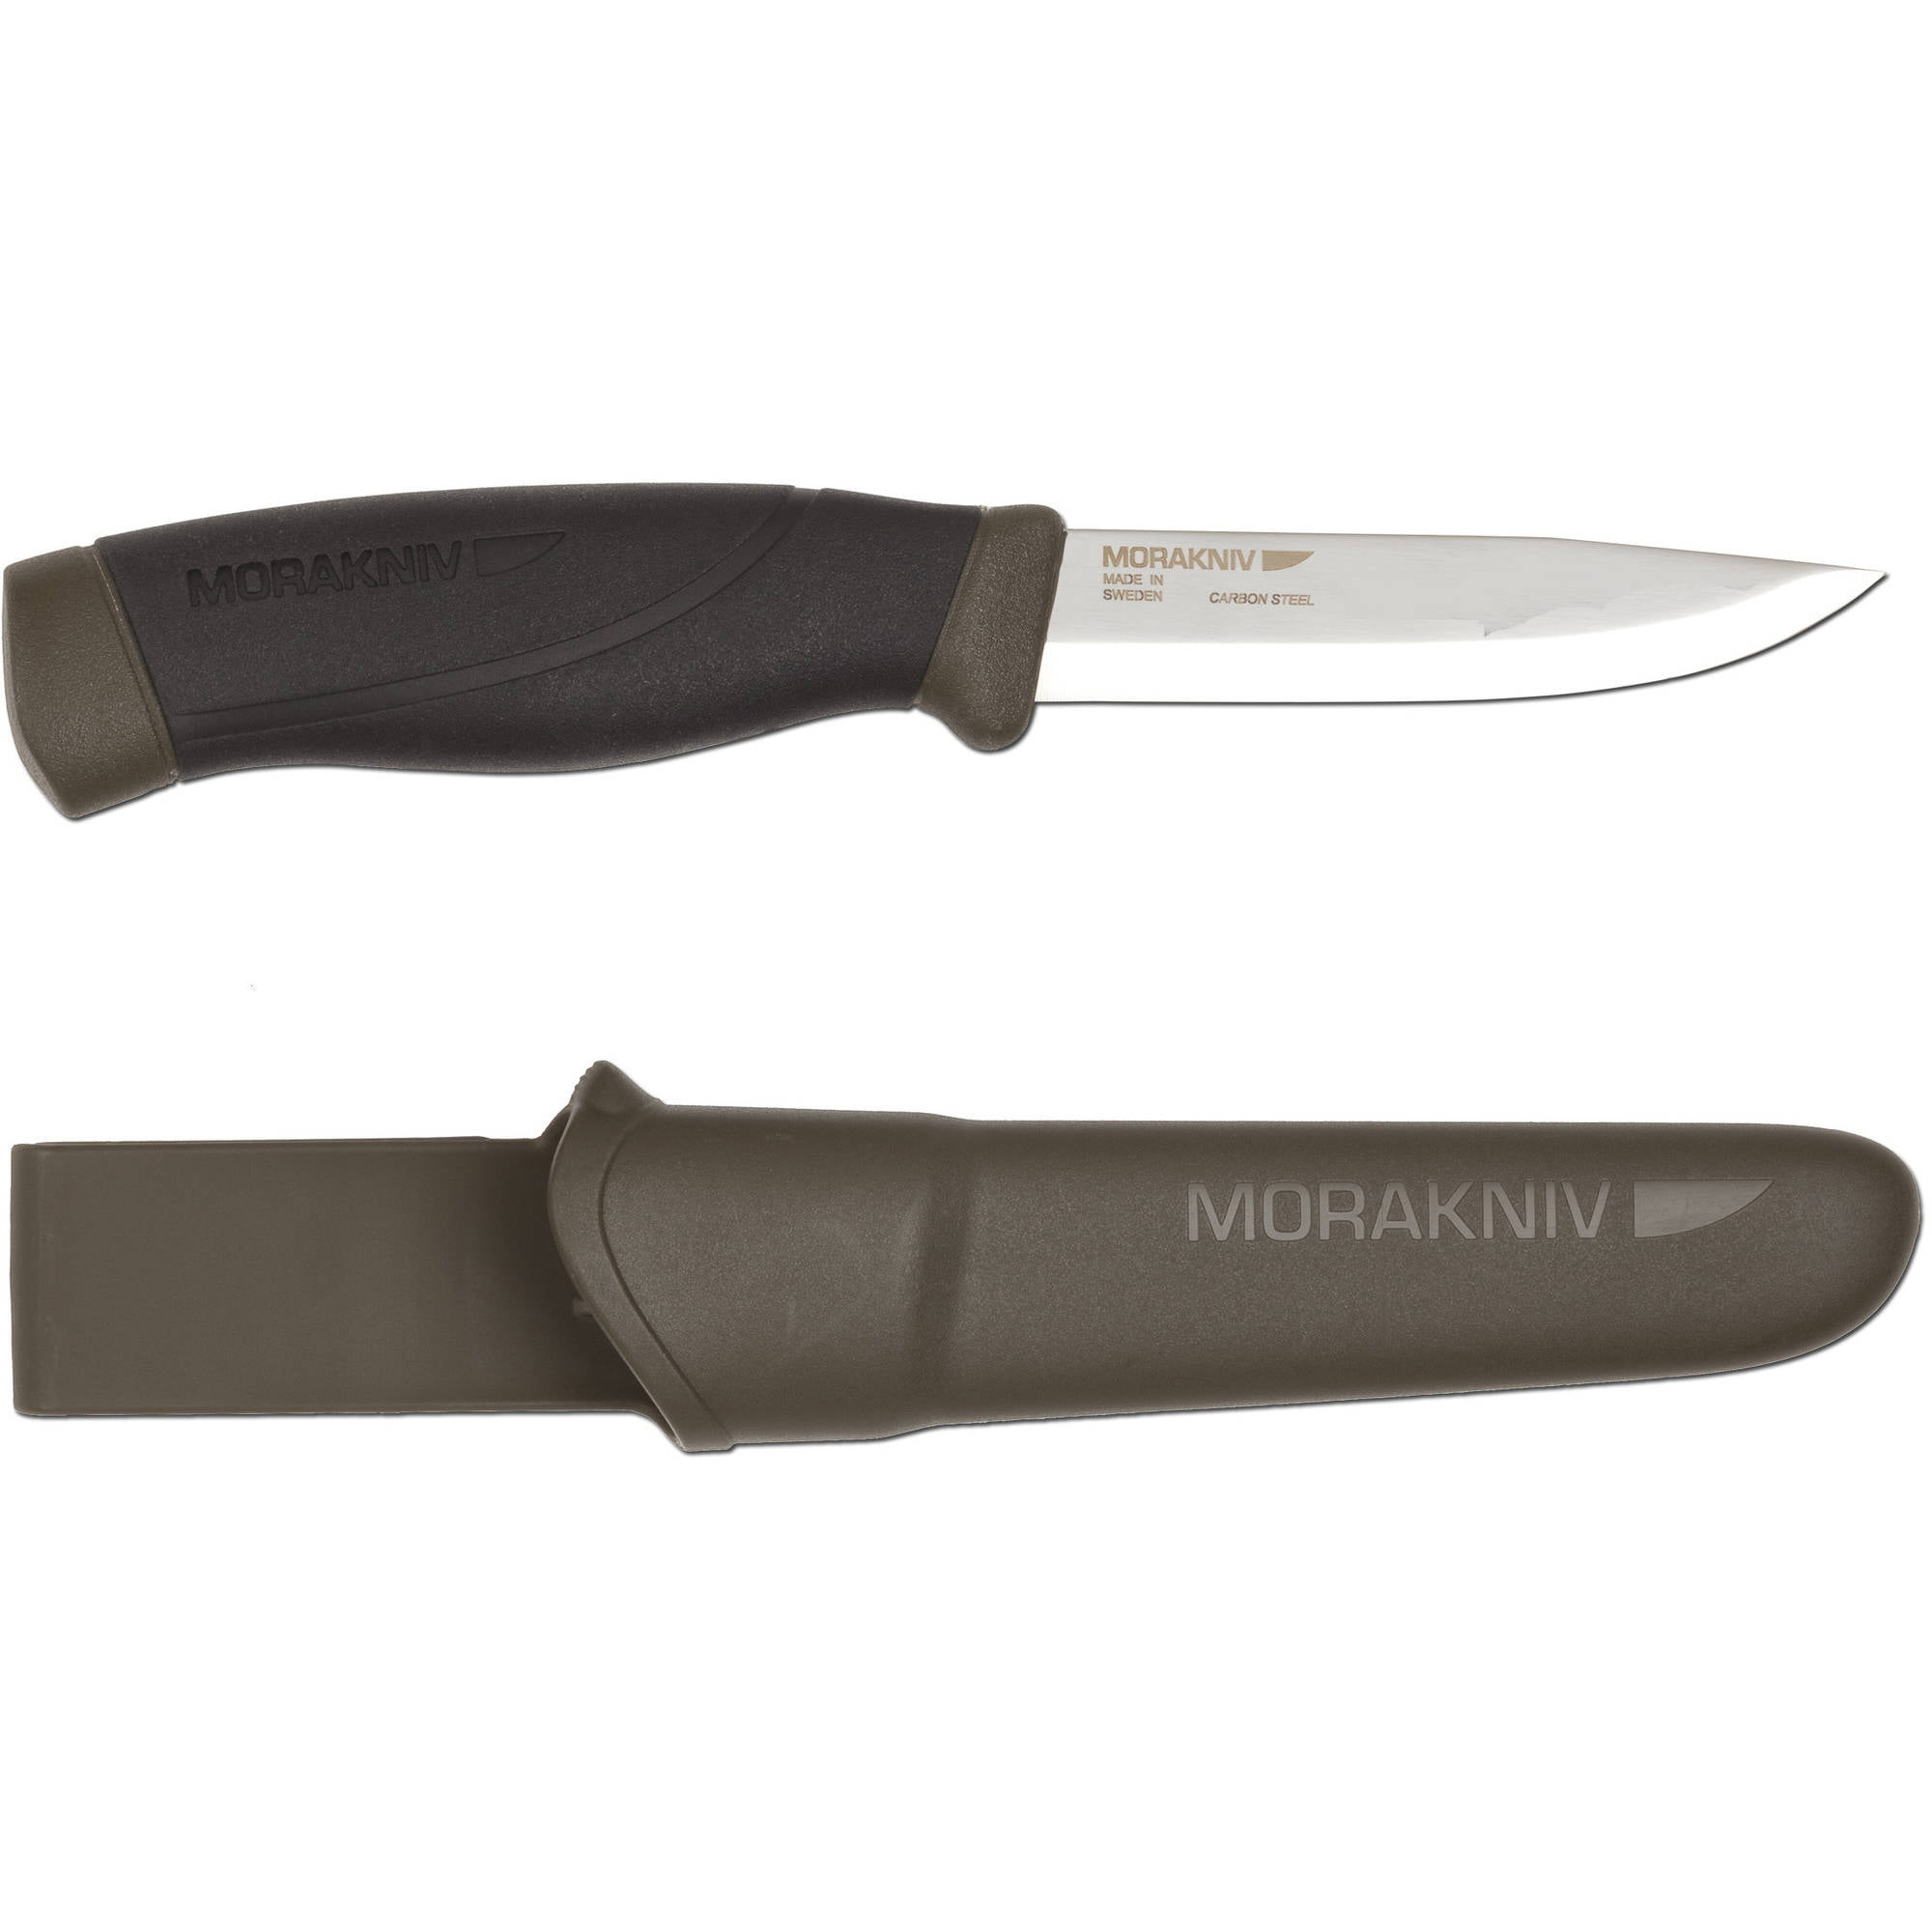 Morakniv Companion Heavy-Duty Fixed Blade Carbon Steel Knife, Military Green by Mora of Sweden